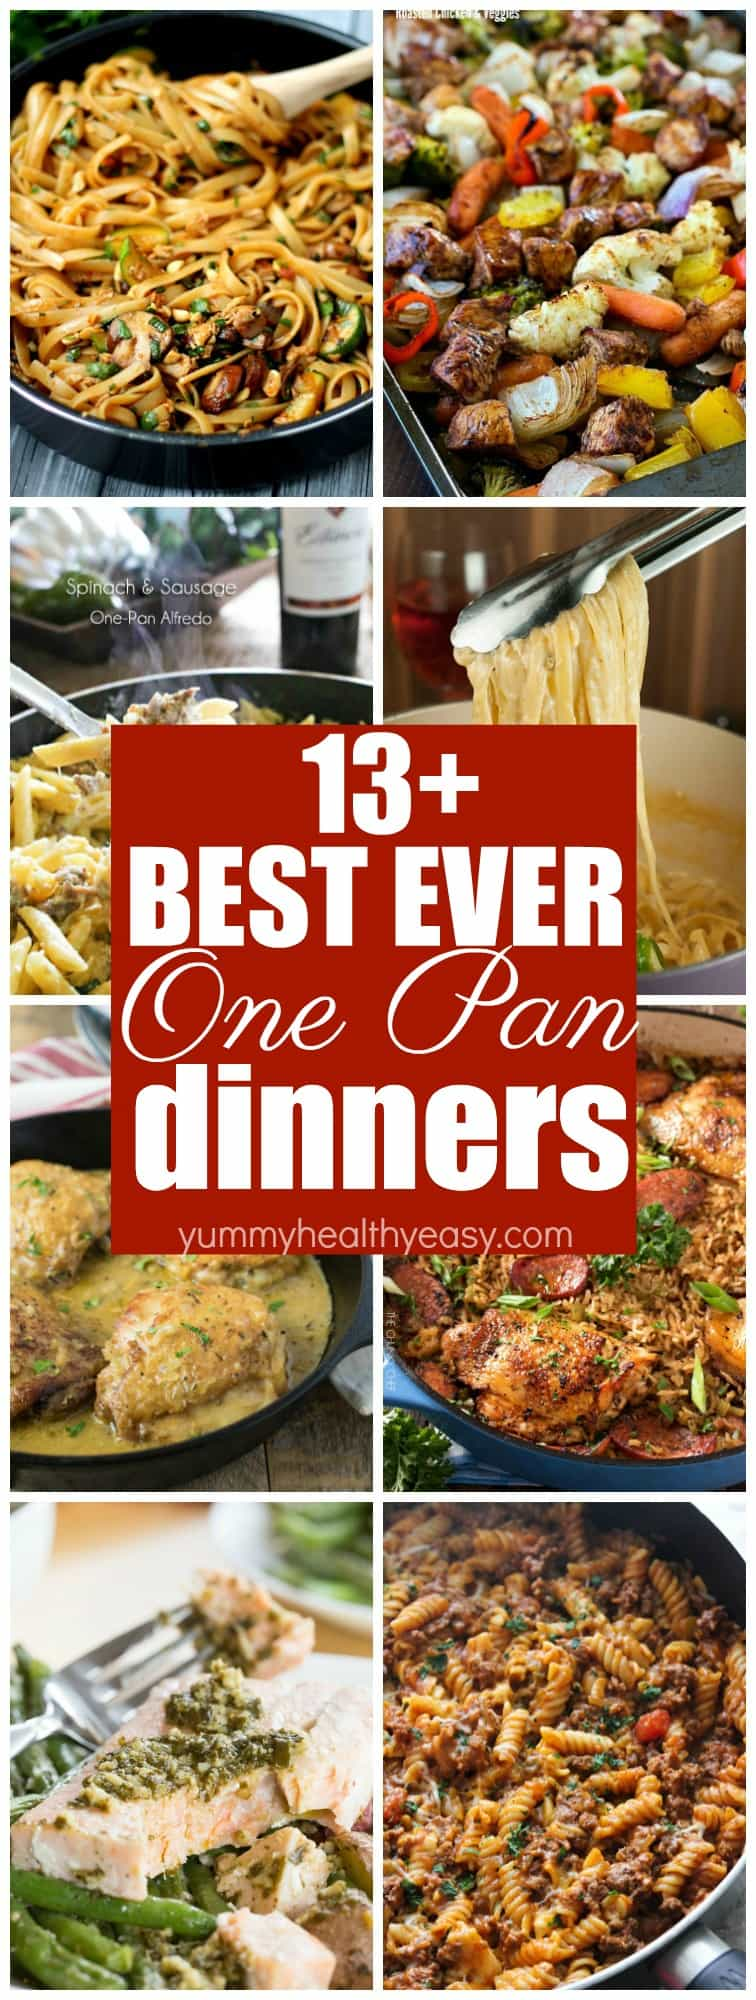 Try these easy ONE PAN meals out for your next dinner! These 13+ recipes will have you drooling and won't have you doing dishes all night!  via @jennikolaus